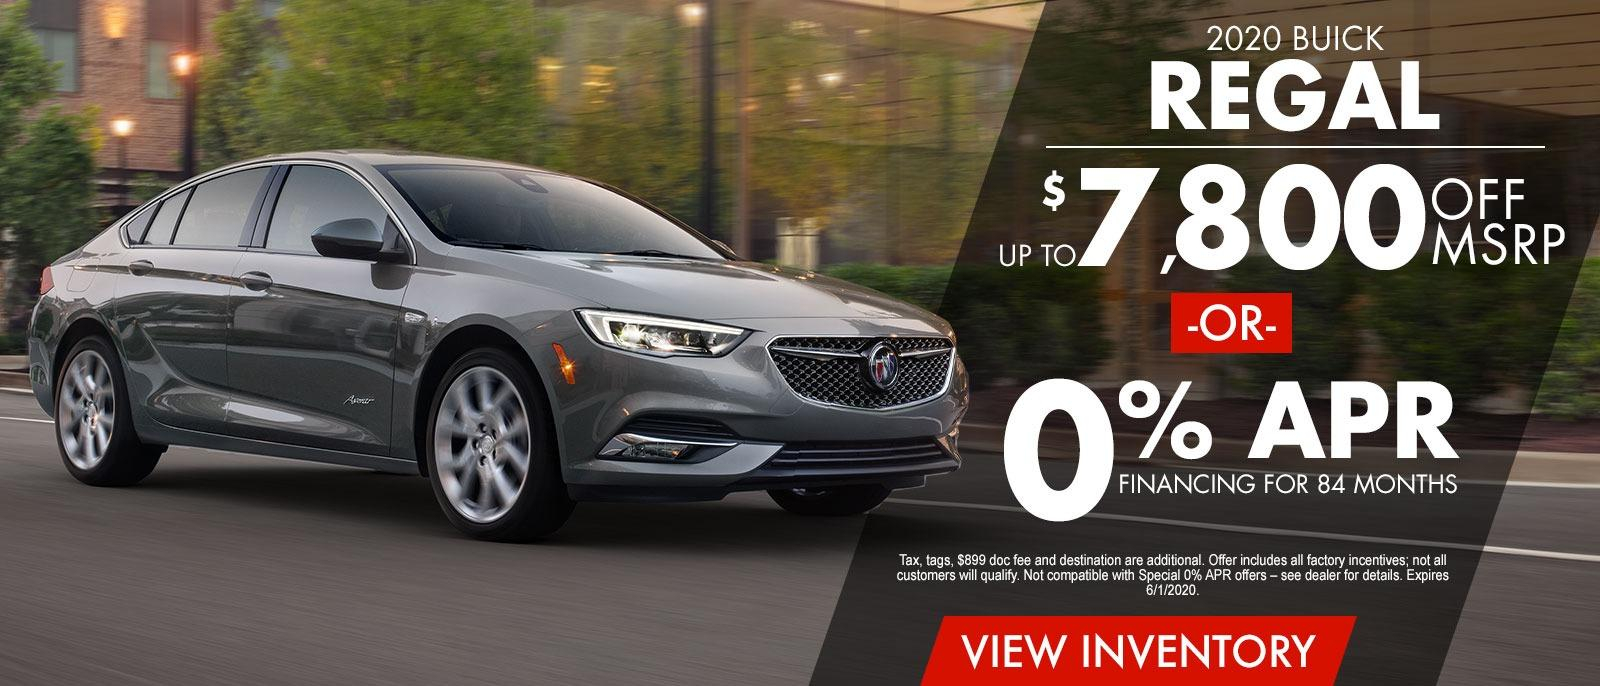 Joyce Koons Buick Gmc, New & Used Auto Dealership In New 2021 Buick Cascada Inventory, Images, Incentives